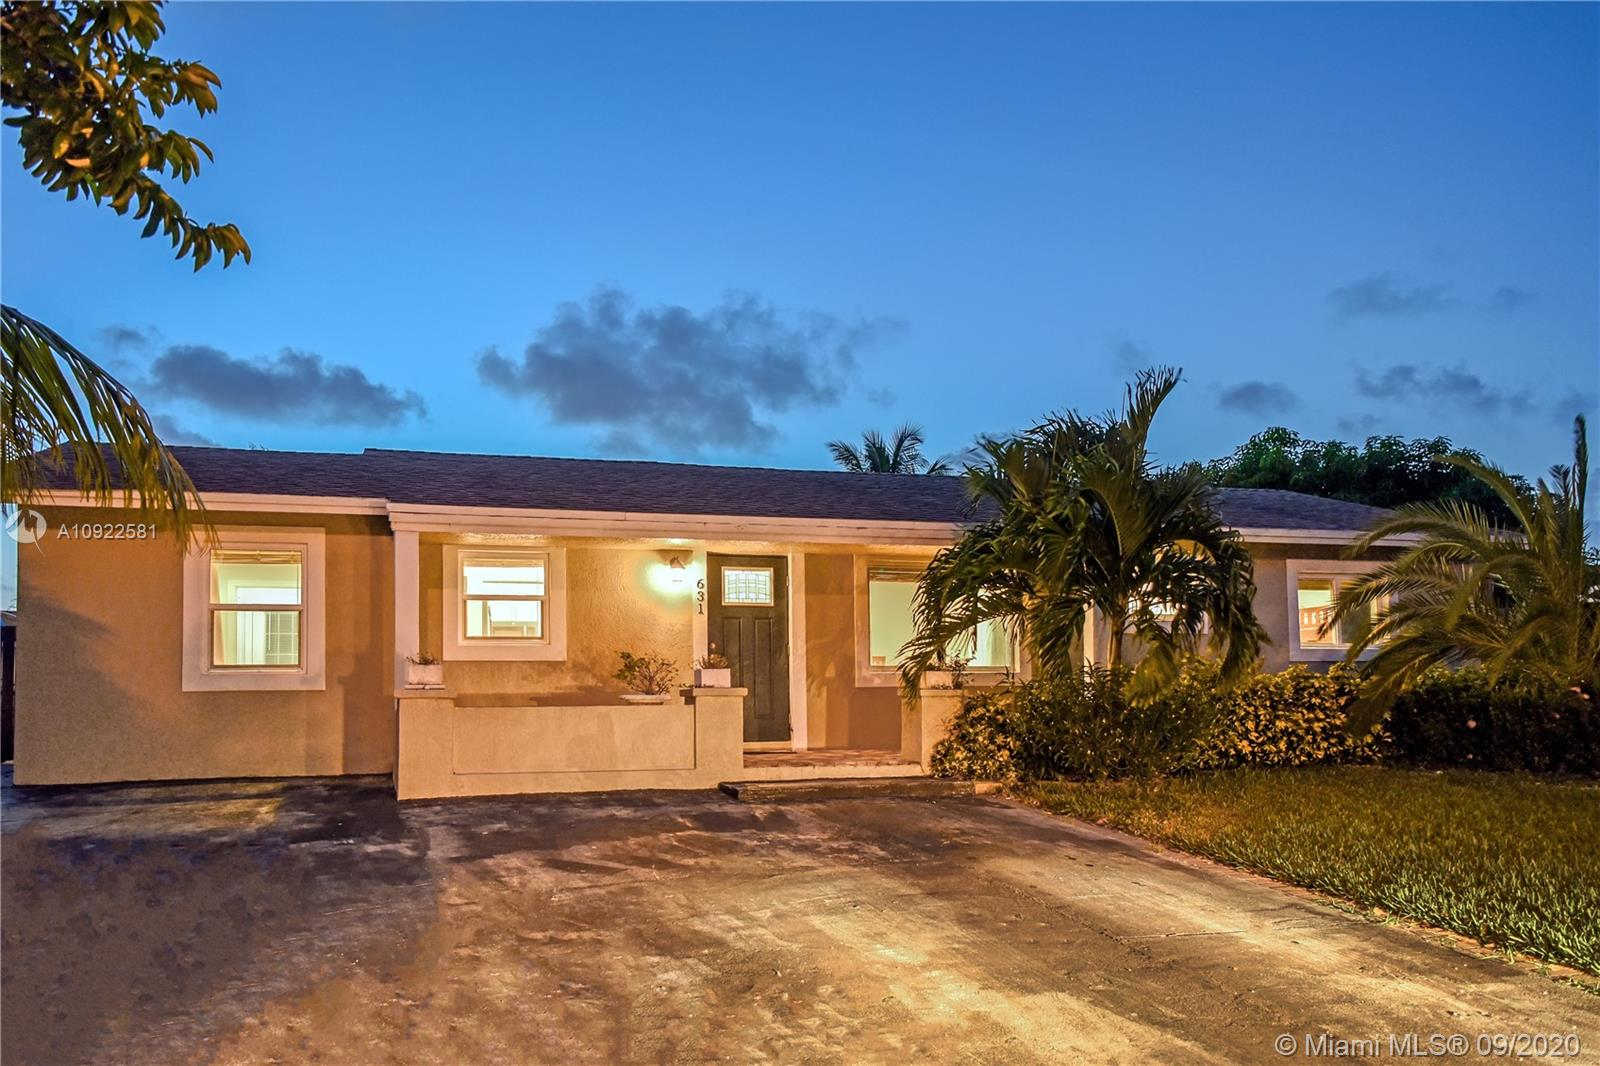 Experience Florida Beach life in a beautiful renovated House on the cul-de-sac. Stylish and immaculate, this home was renovated with pristine taste and attention to all detail. Enjoy both indoor and outdoor living in your large backyard, under covered entertaining area overlooking outdoor gourmet kitchen and completely fenced well maintained expansive grassy yard. All NEW IMPACT WINDOWS & DOORS, new floors throughout, open style kitchen , quartz countertops, with a beautiful island and stainless steel appliances. The bathrooms include magnificent tile selections, modern vanities, waterless tank, AC 4 years old. Space to park your boat or RV. Minutes from sandy beaches and a magnificent fishing pier, shopping and entertainment options.